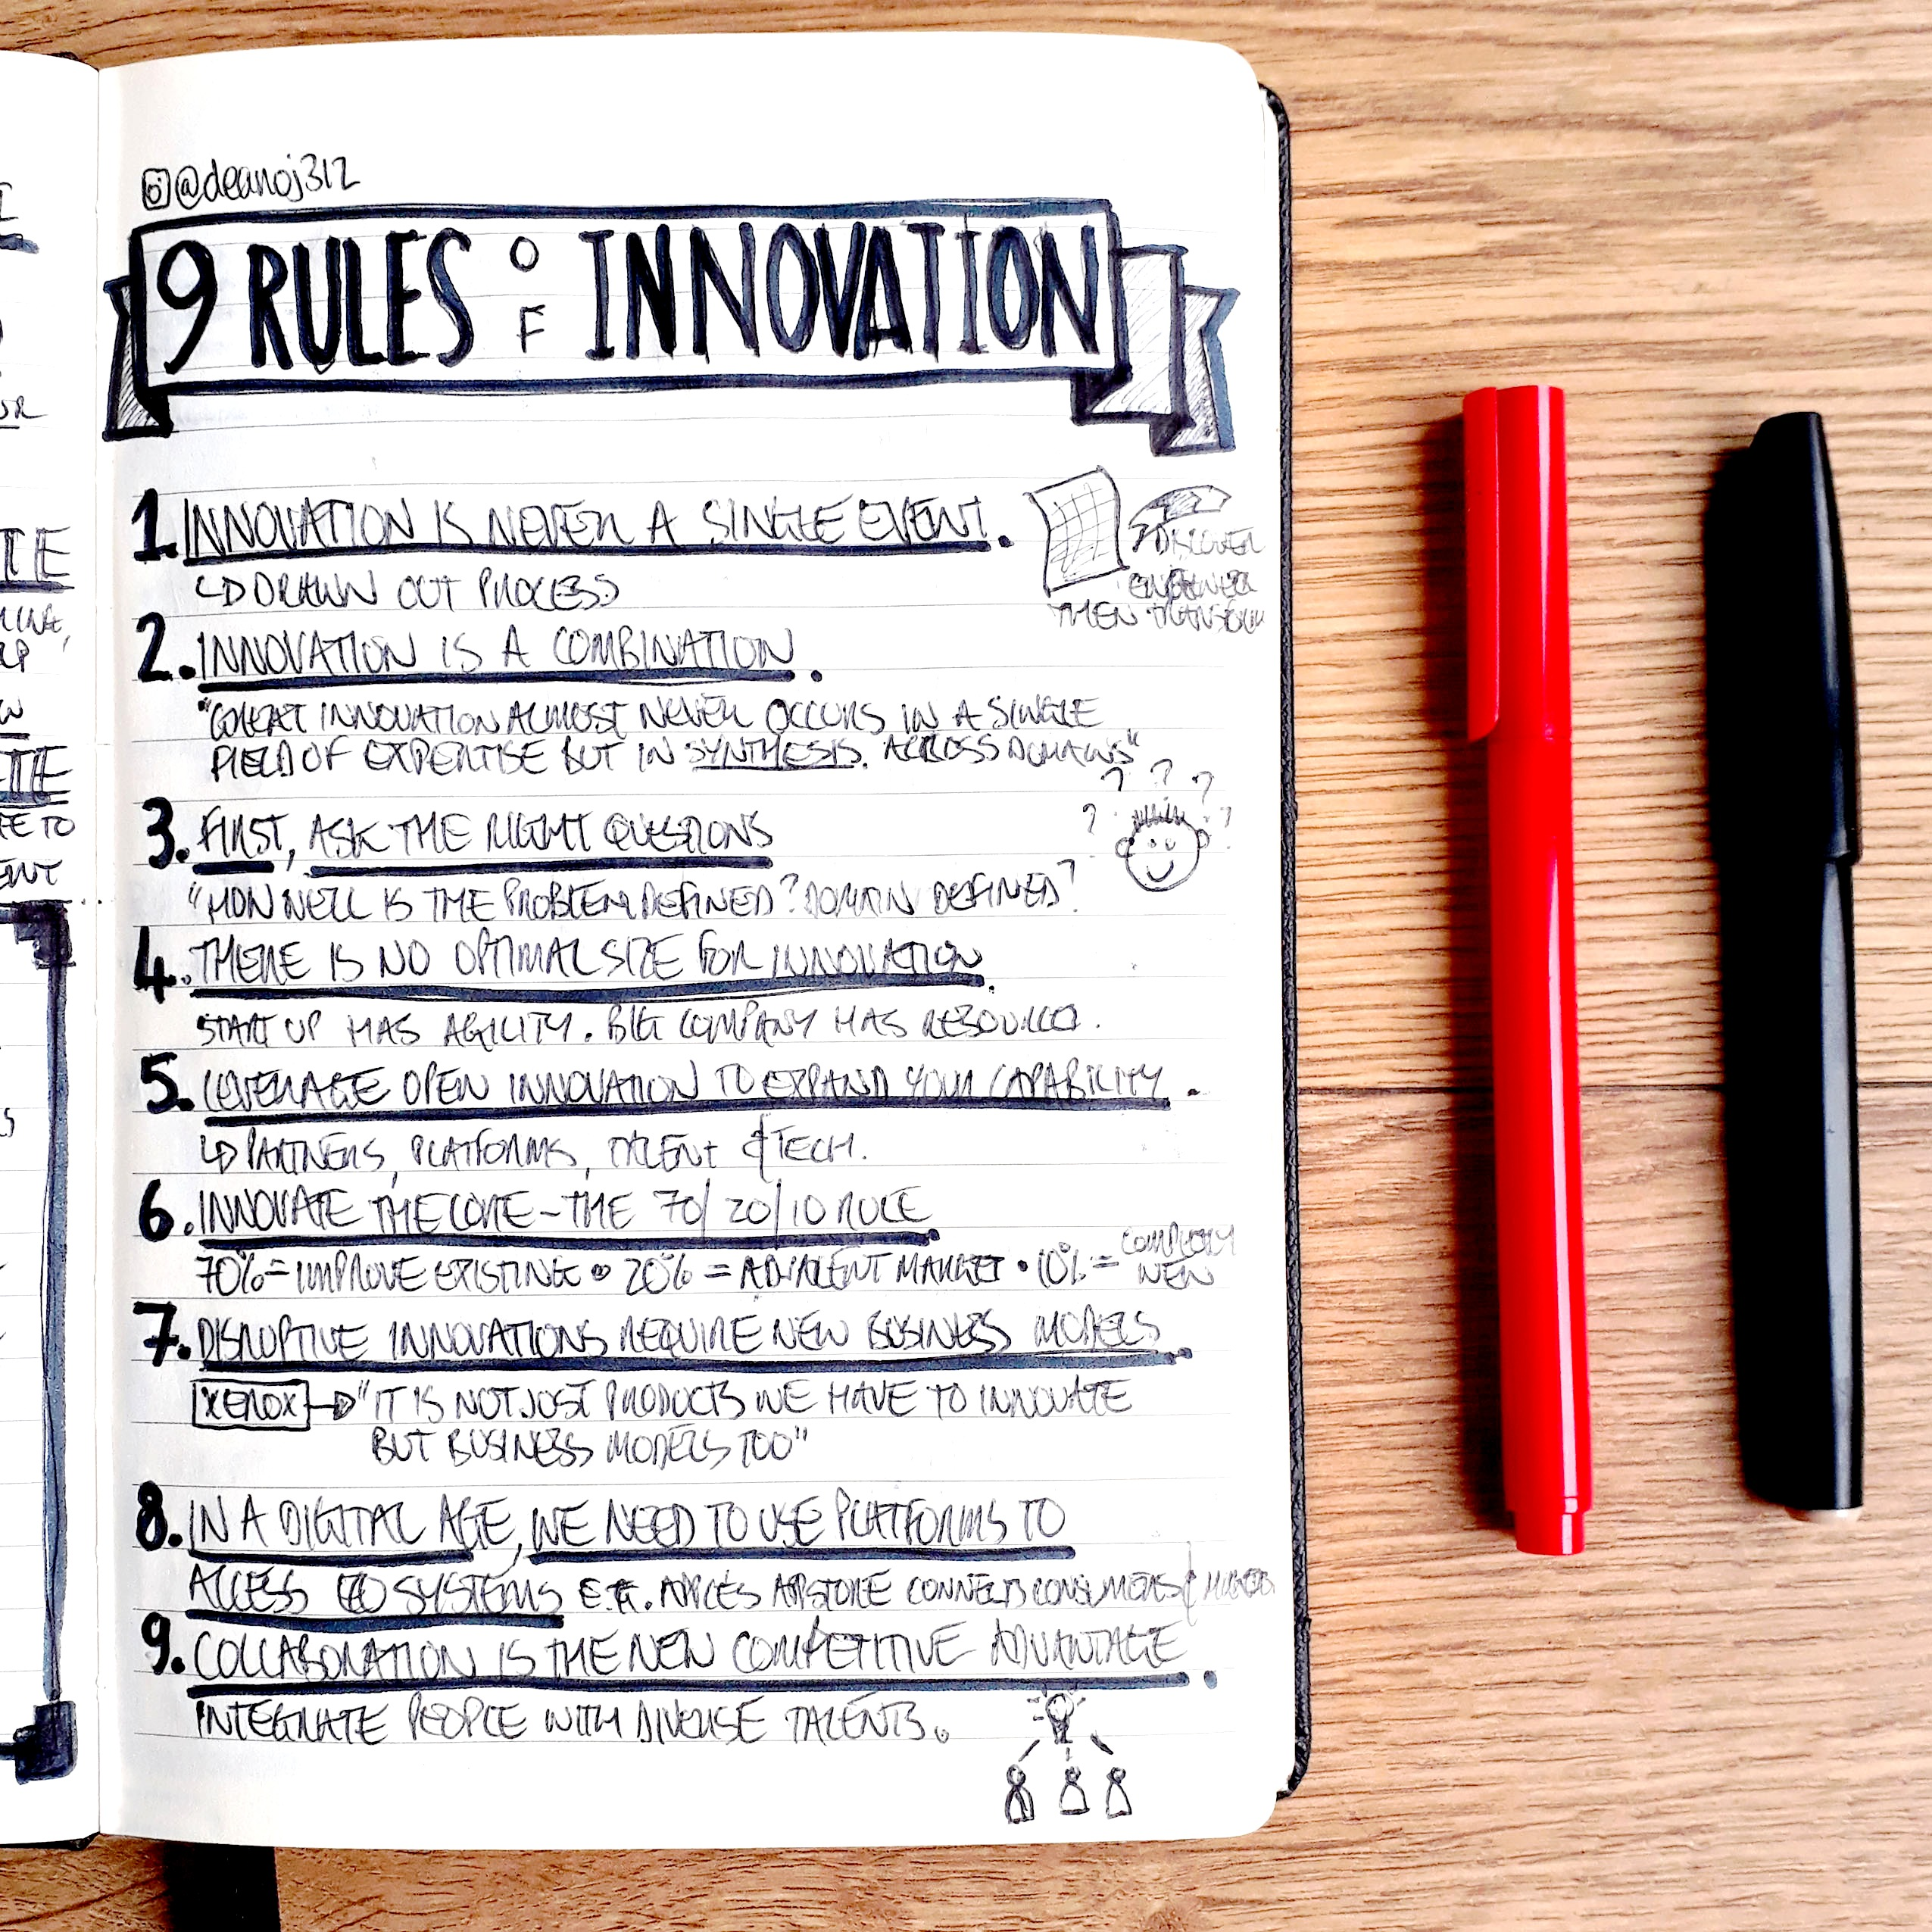 9 Rules of Innovation Image